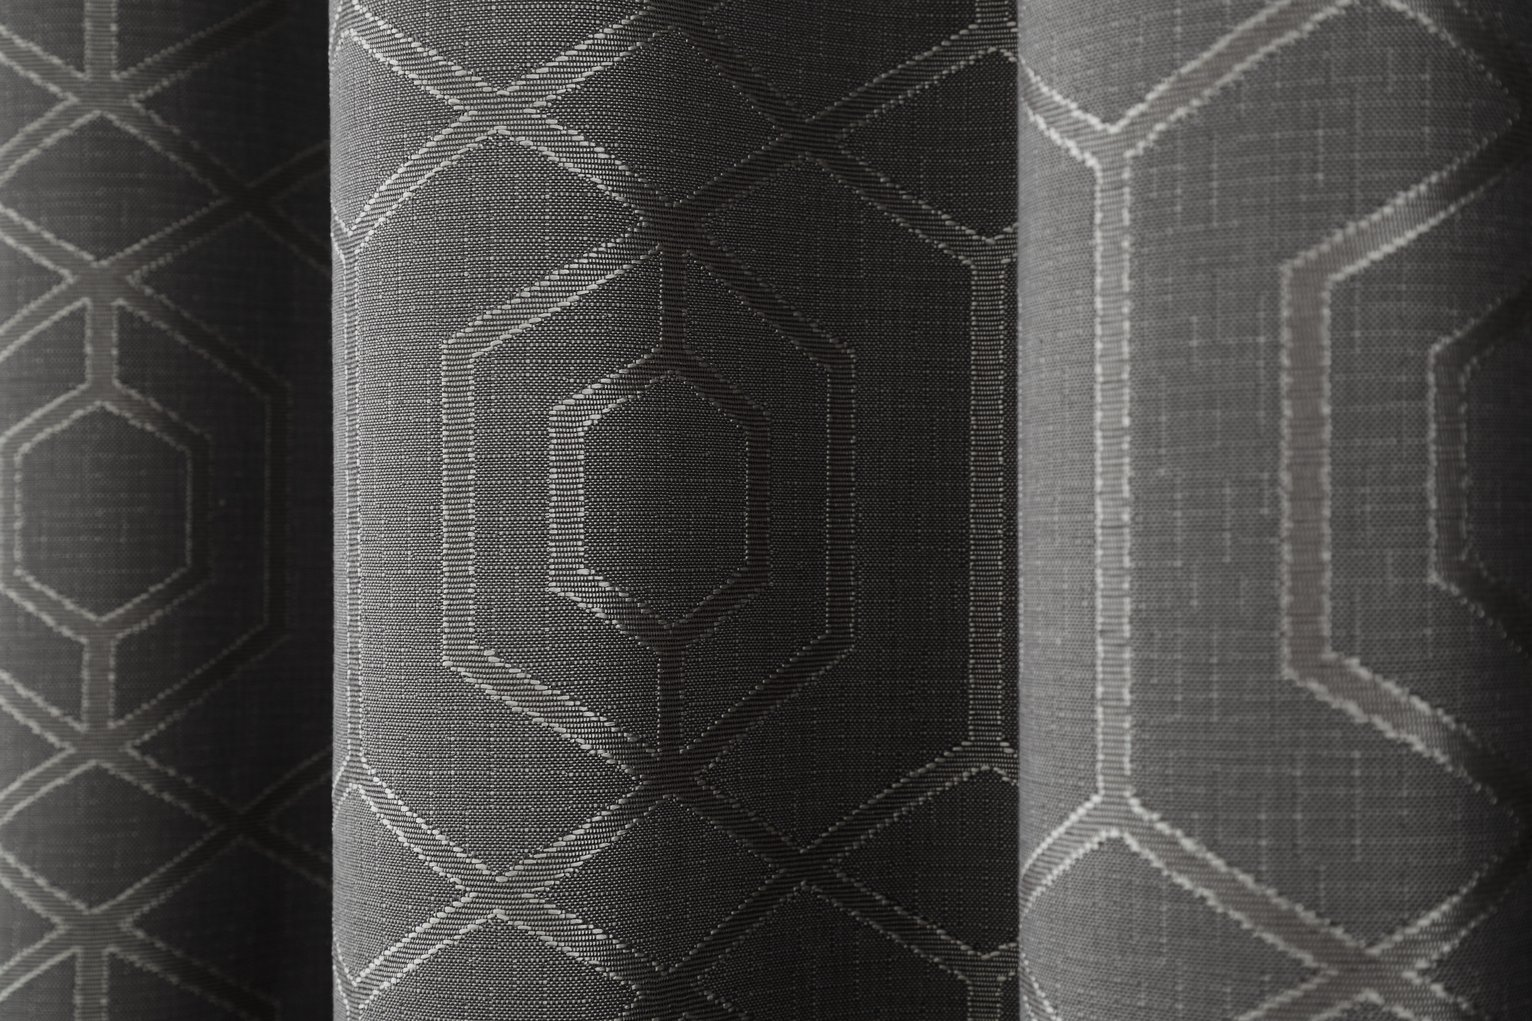 Curtina Camberwell Eyelet Curtains - 229x229cm - Graphite